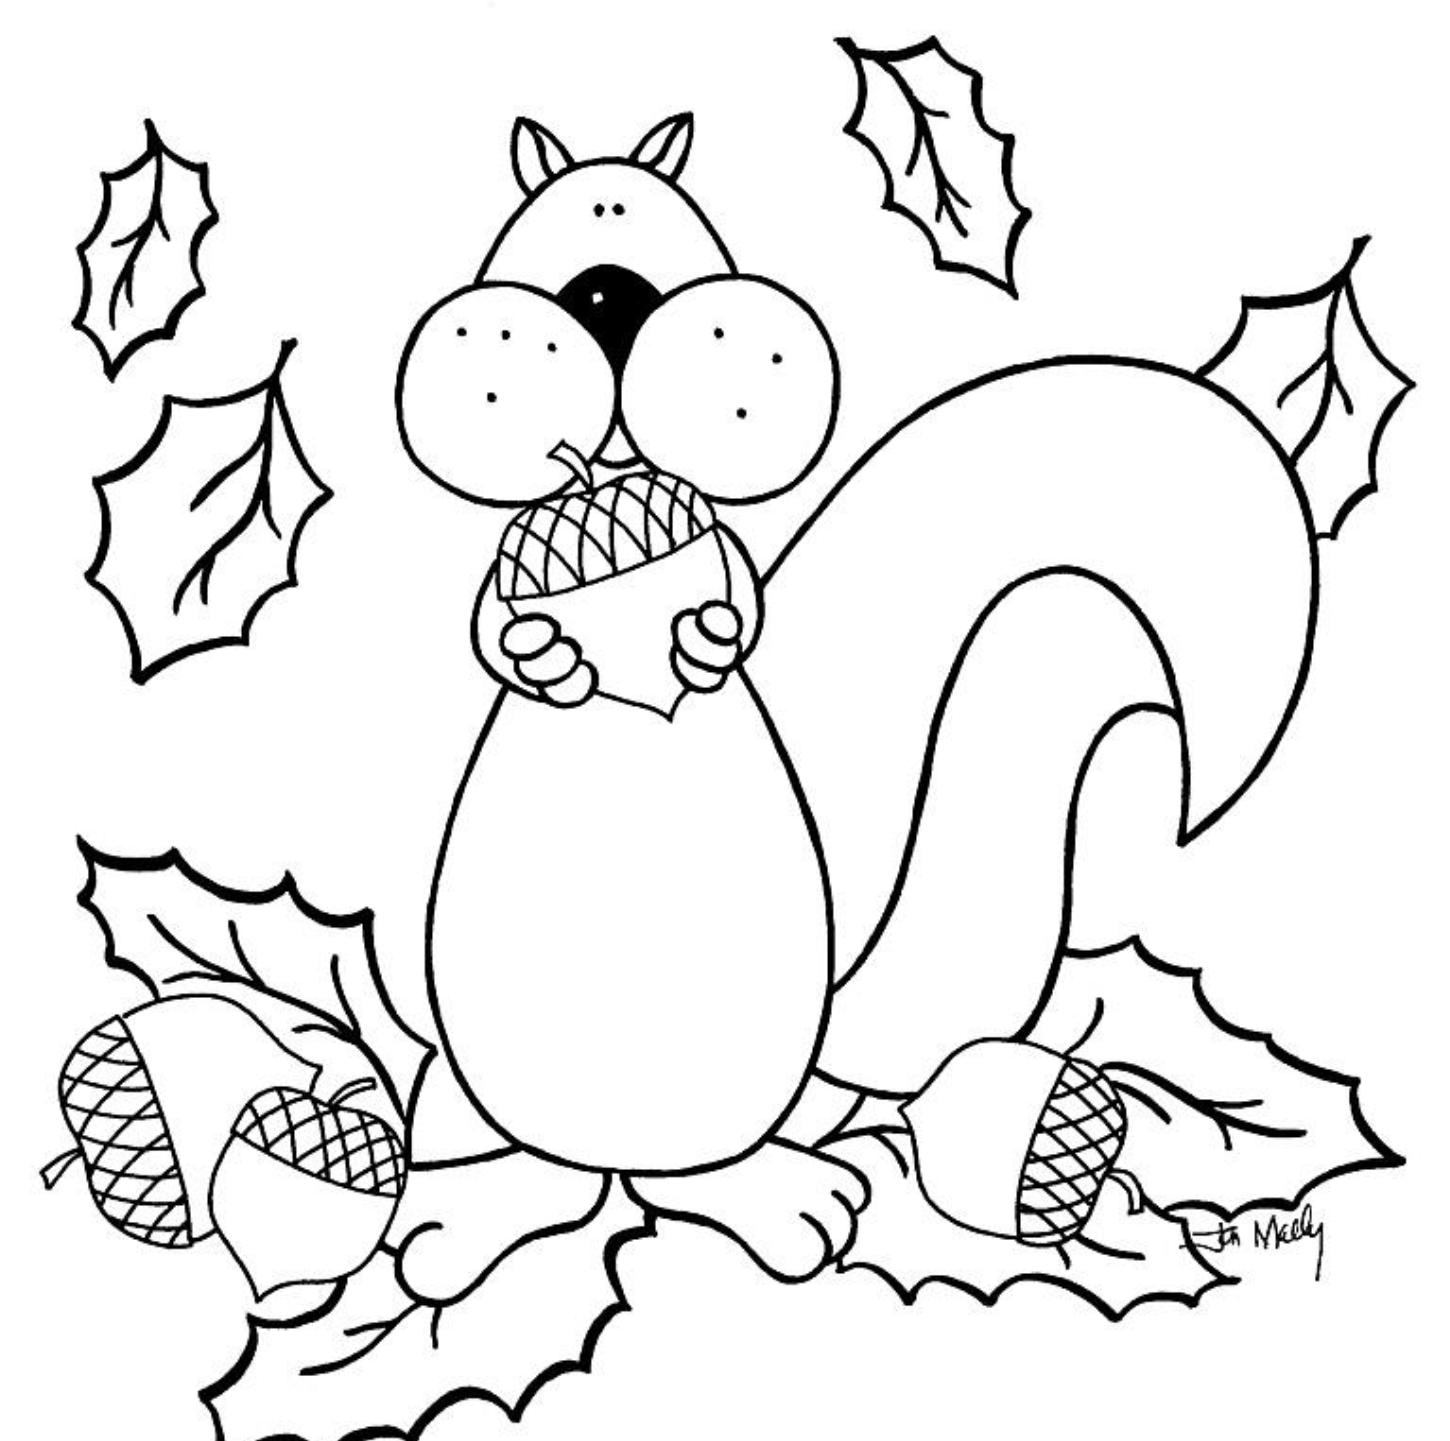 printable coloring pages for teenagers bff coloring pages to download and print for free printable for teenagers coloring pages